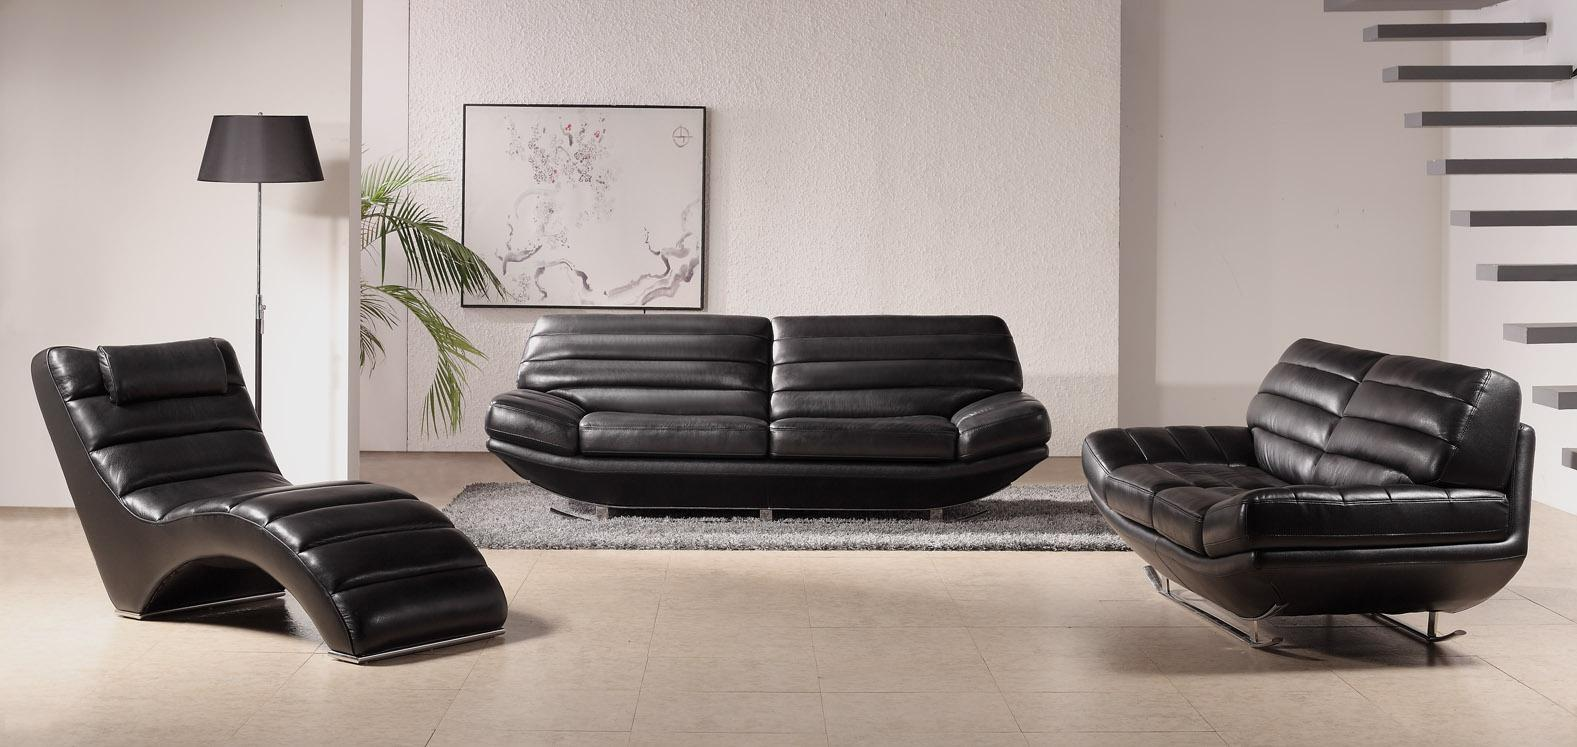 Know about types of couches and sofas my decorative - Leather furniture for small living room ...